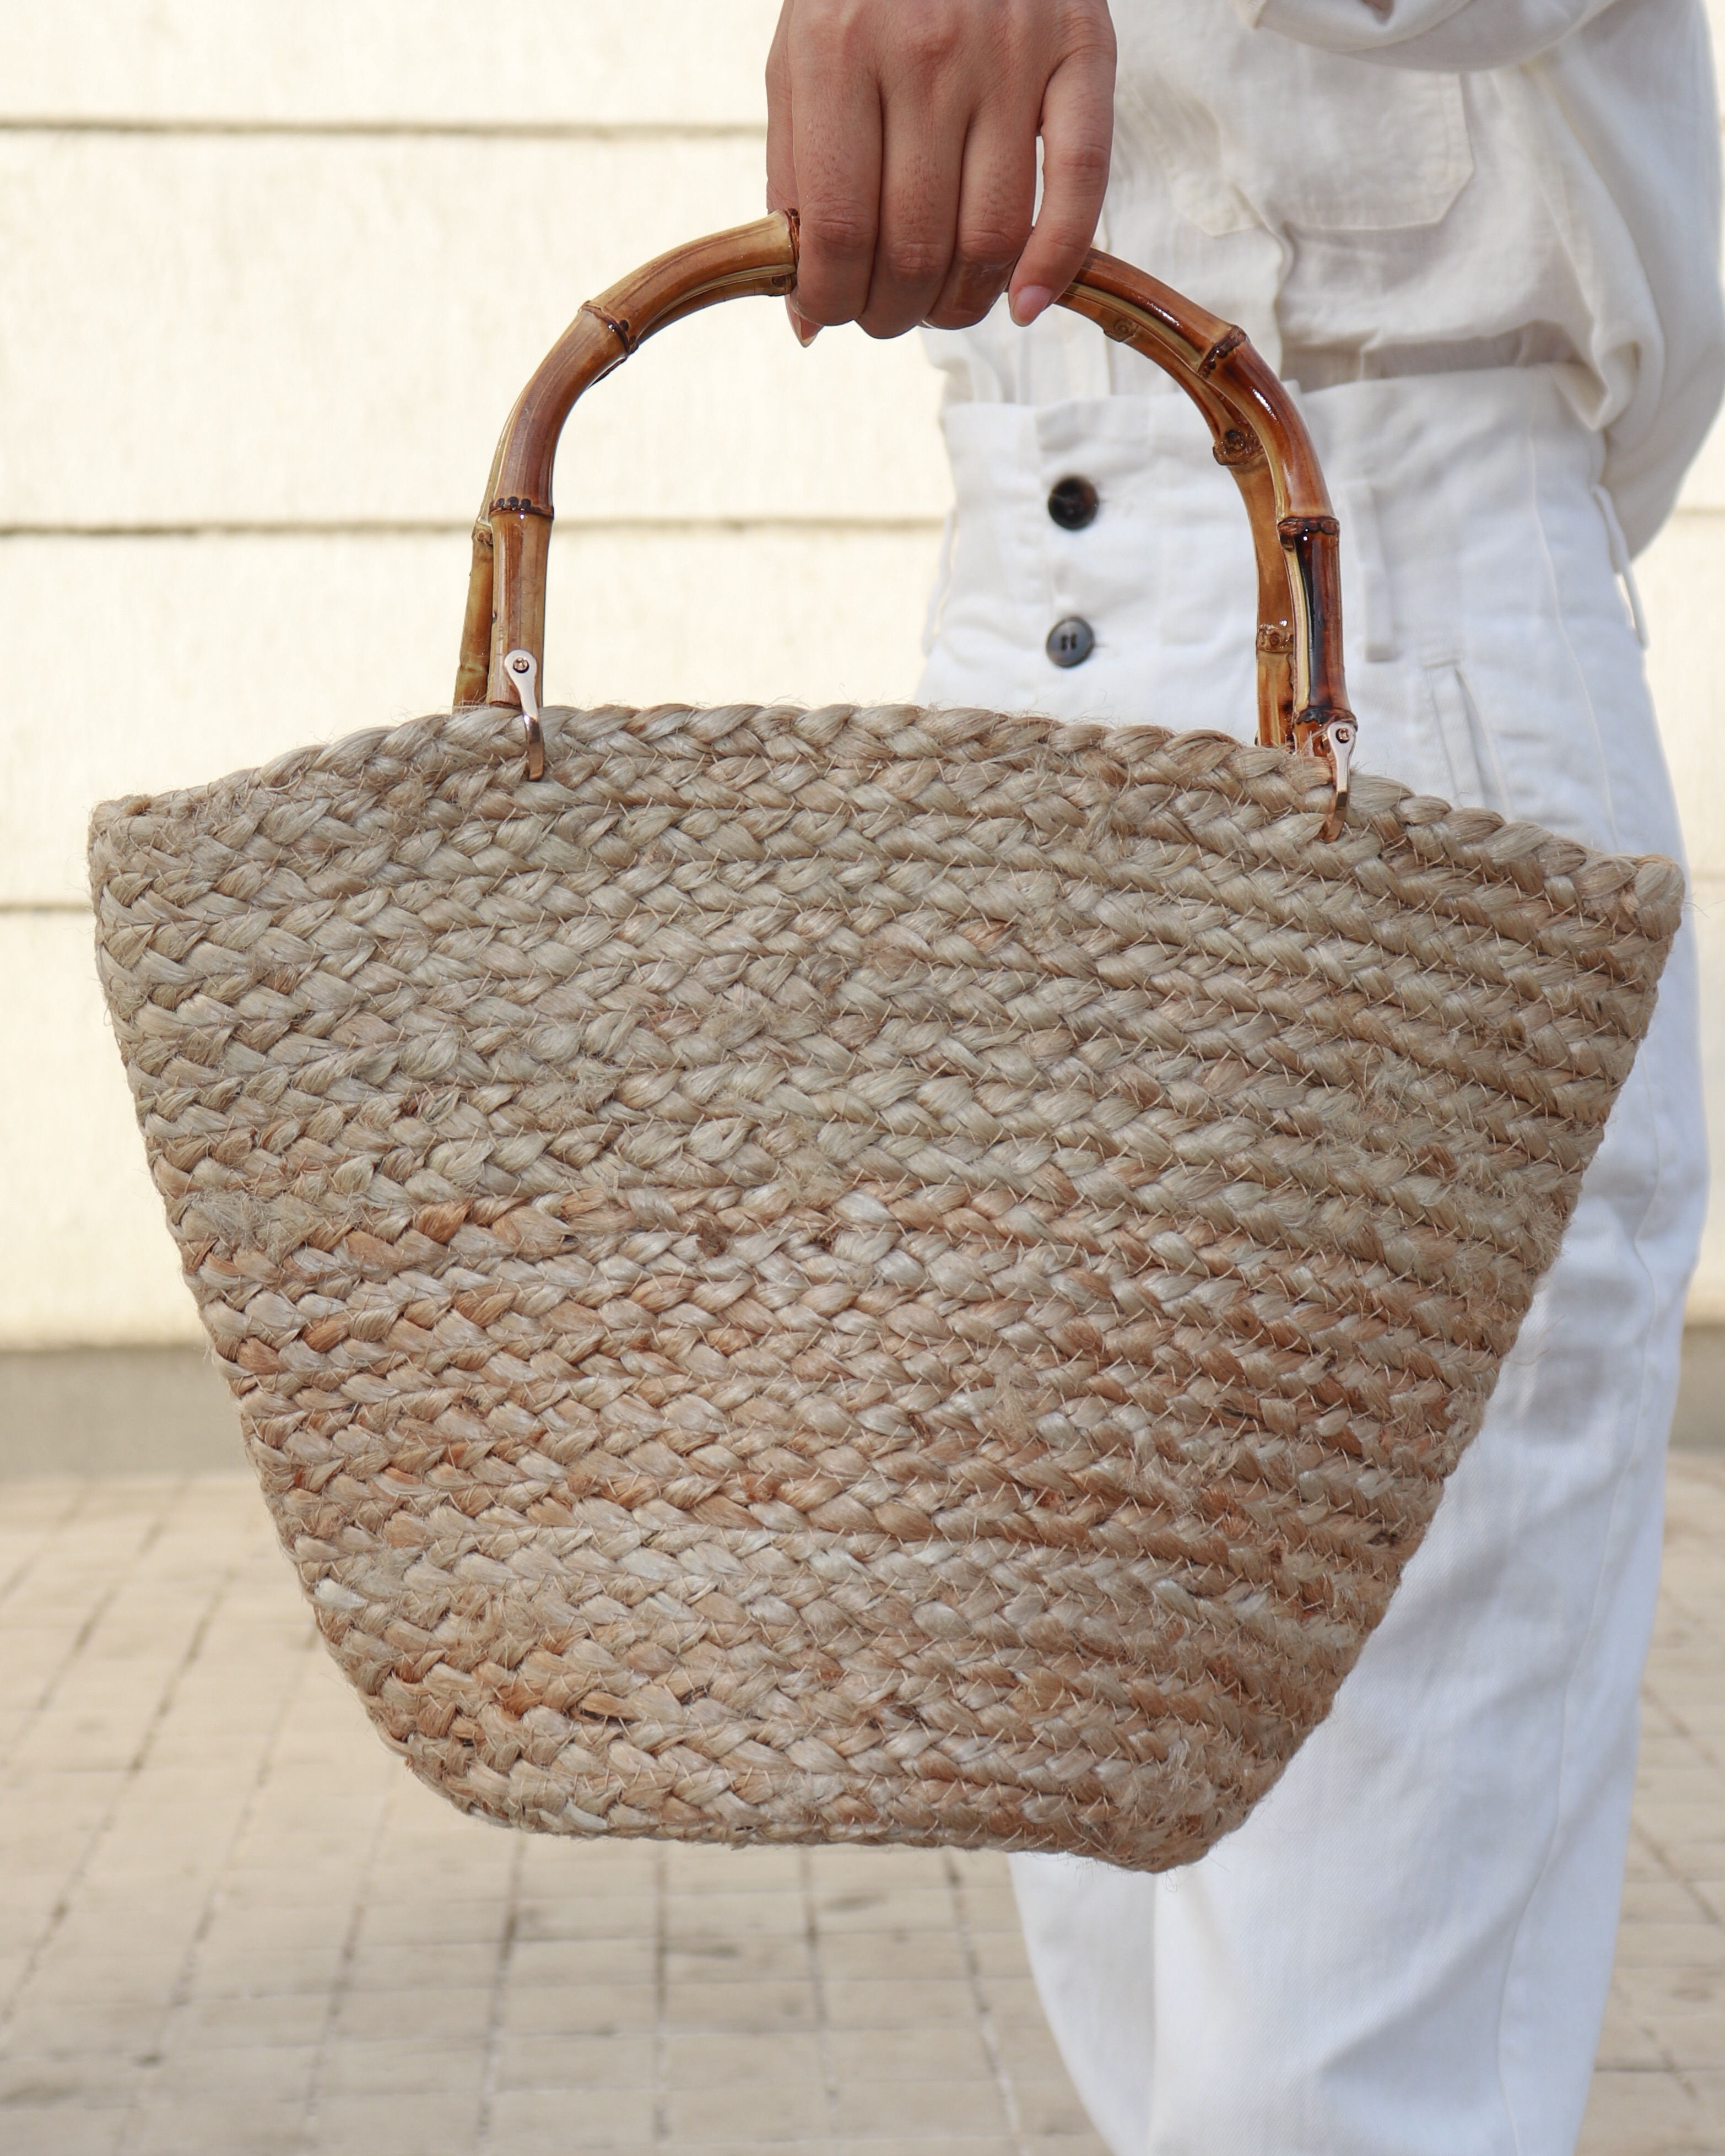 ONE STEP TOWARDS SUSTAINABILITY WITH THE JUTE BAGS - 4